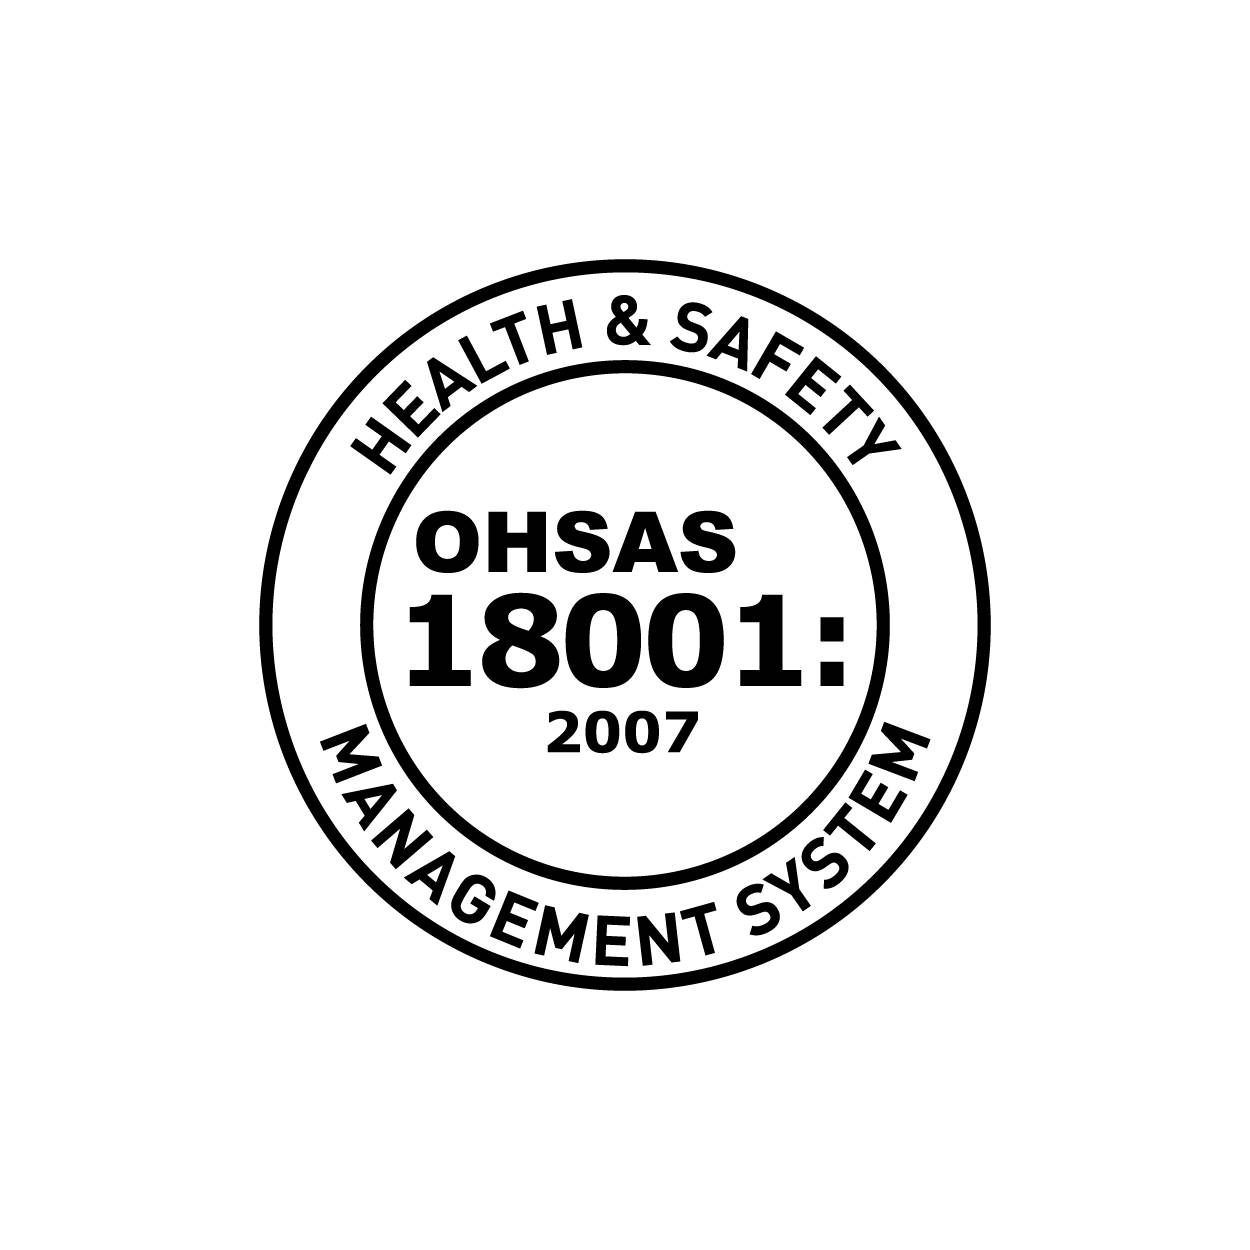 OHSAS 18001:2007 Occupational Health and Safety Certification Logo